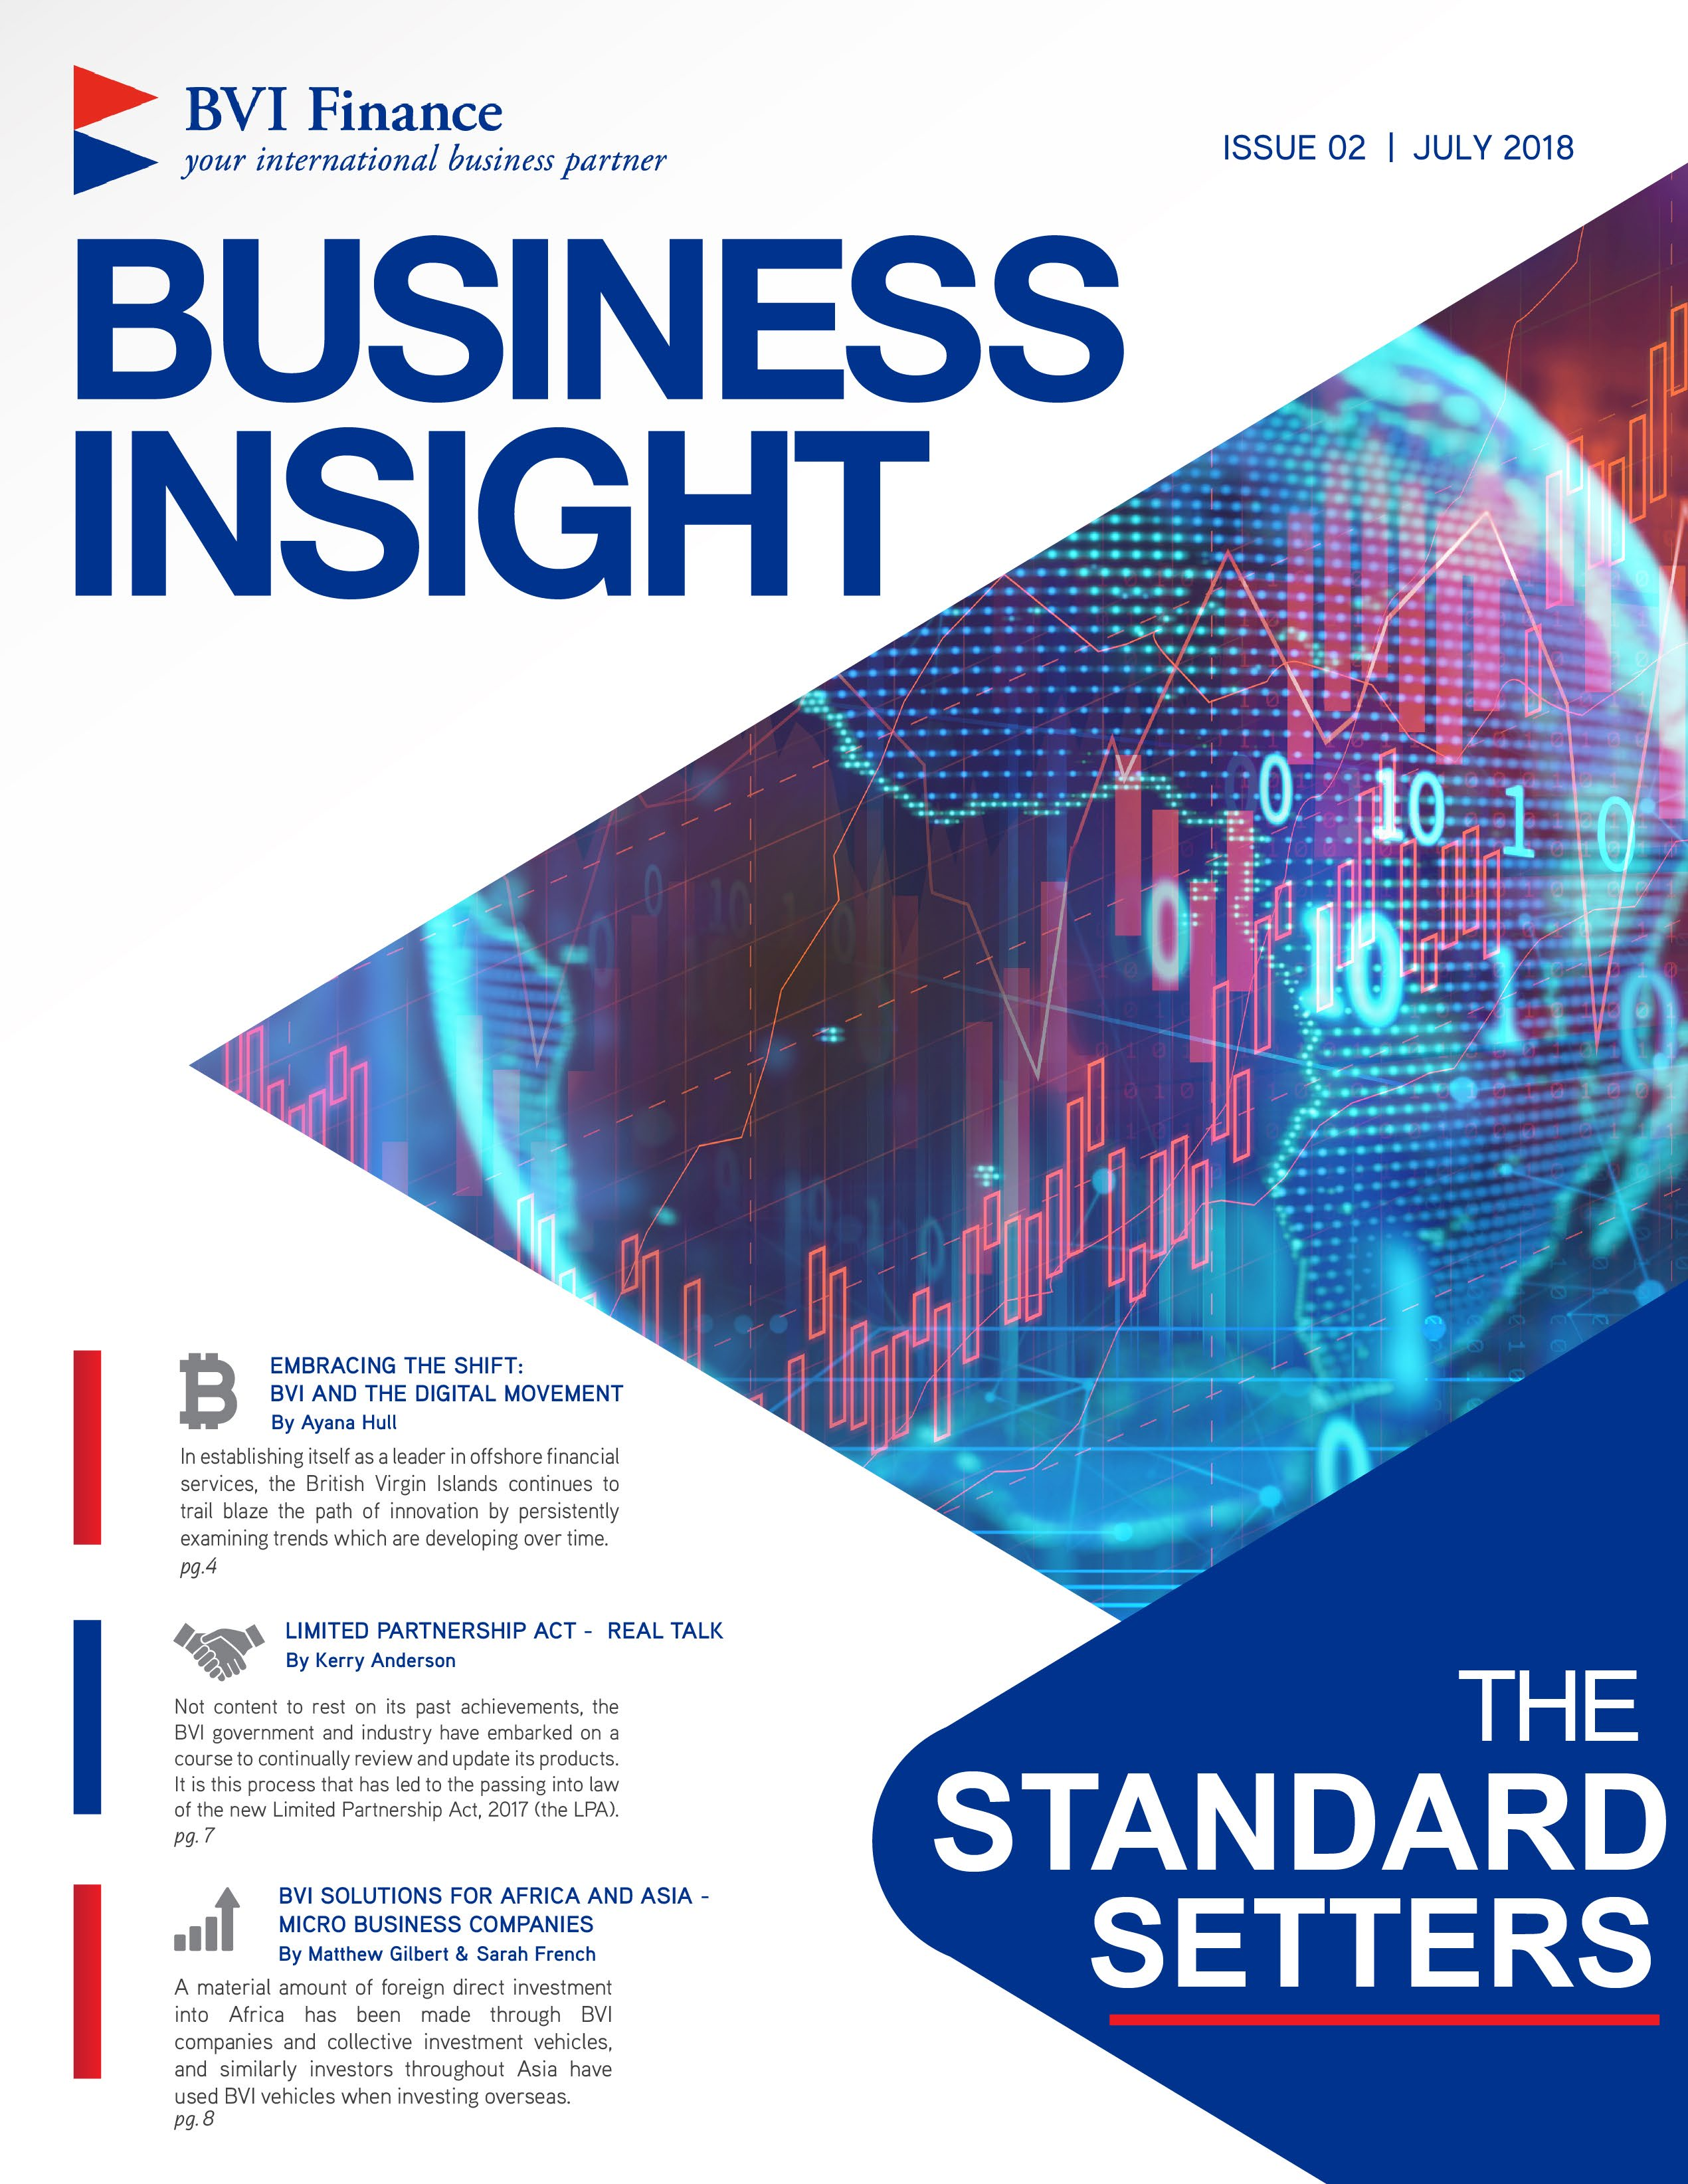 Business Insight: The Standard Setters